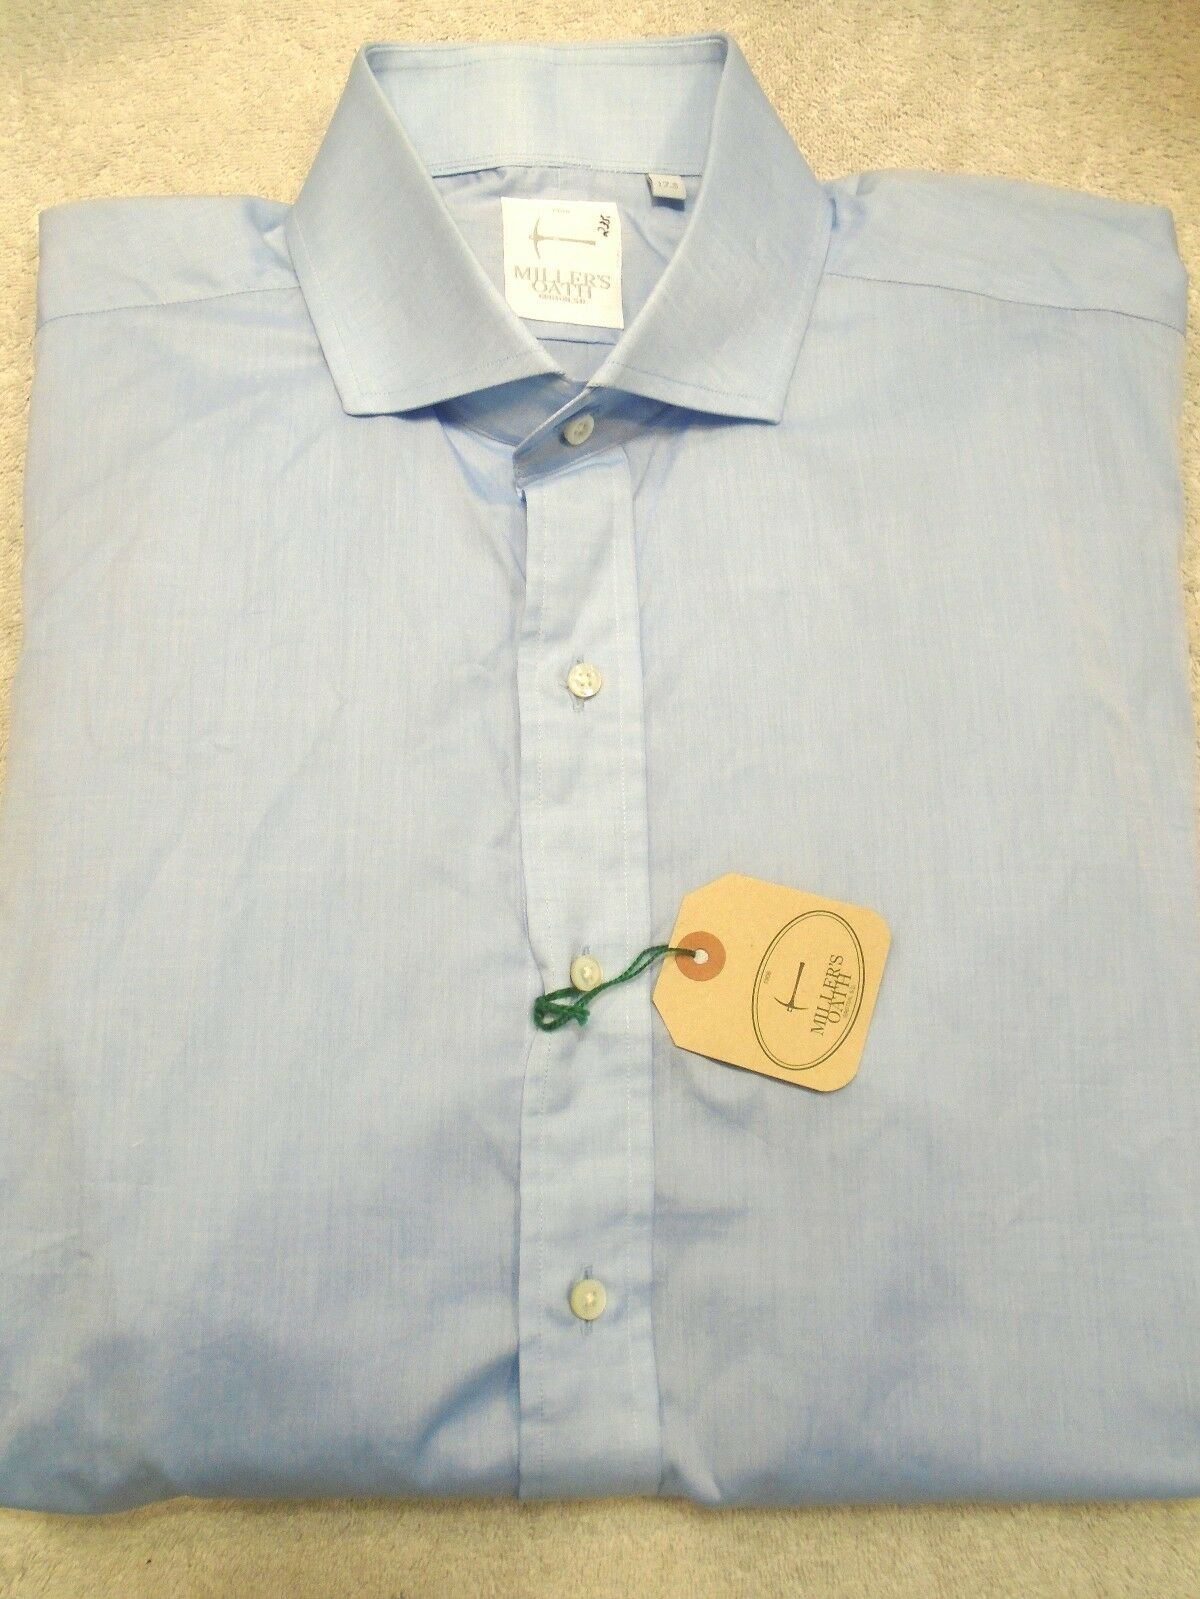 Millers Oath Light bluee Cotton Broadcloth Dress Shirt NWT 17.5 x 37